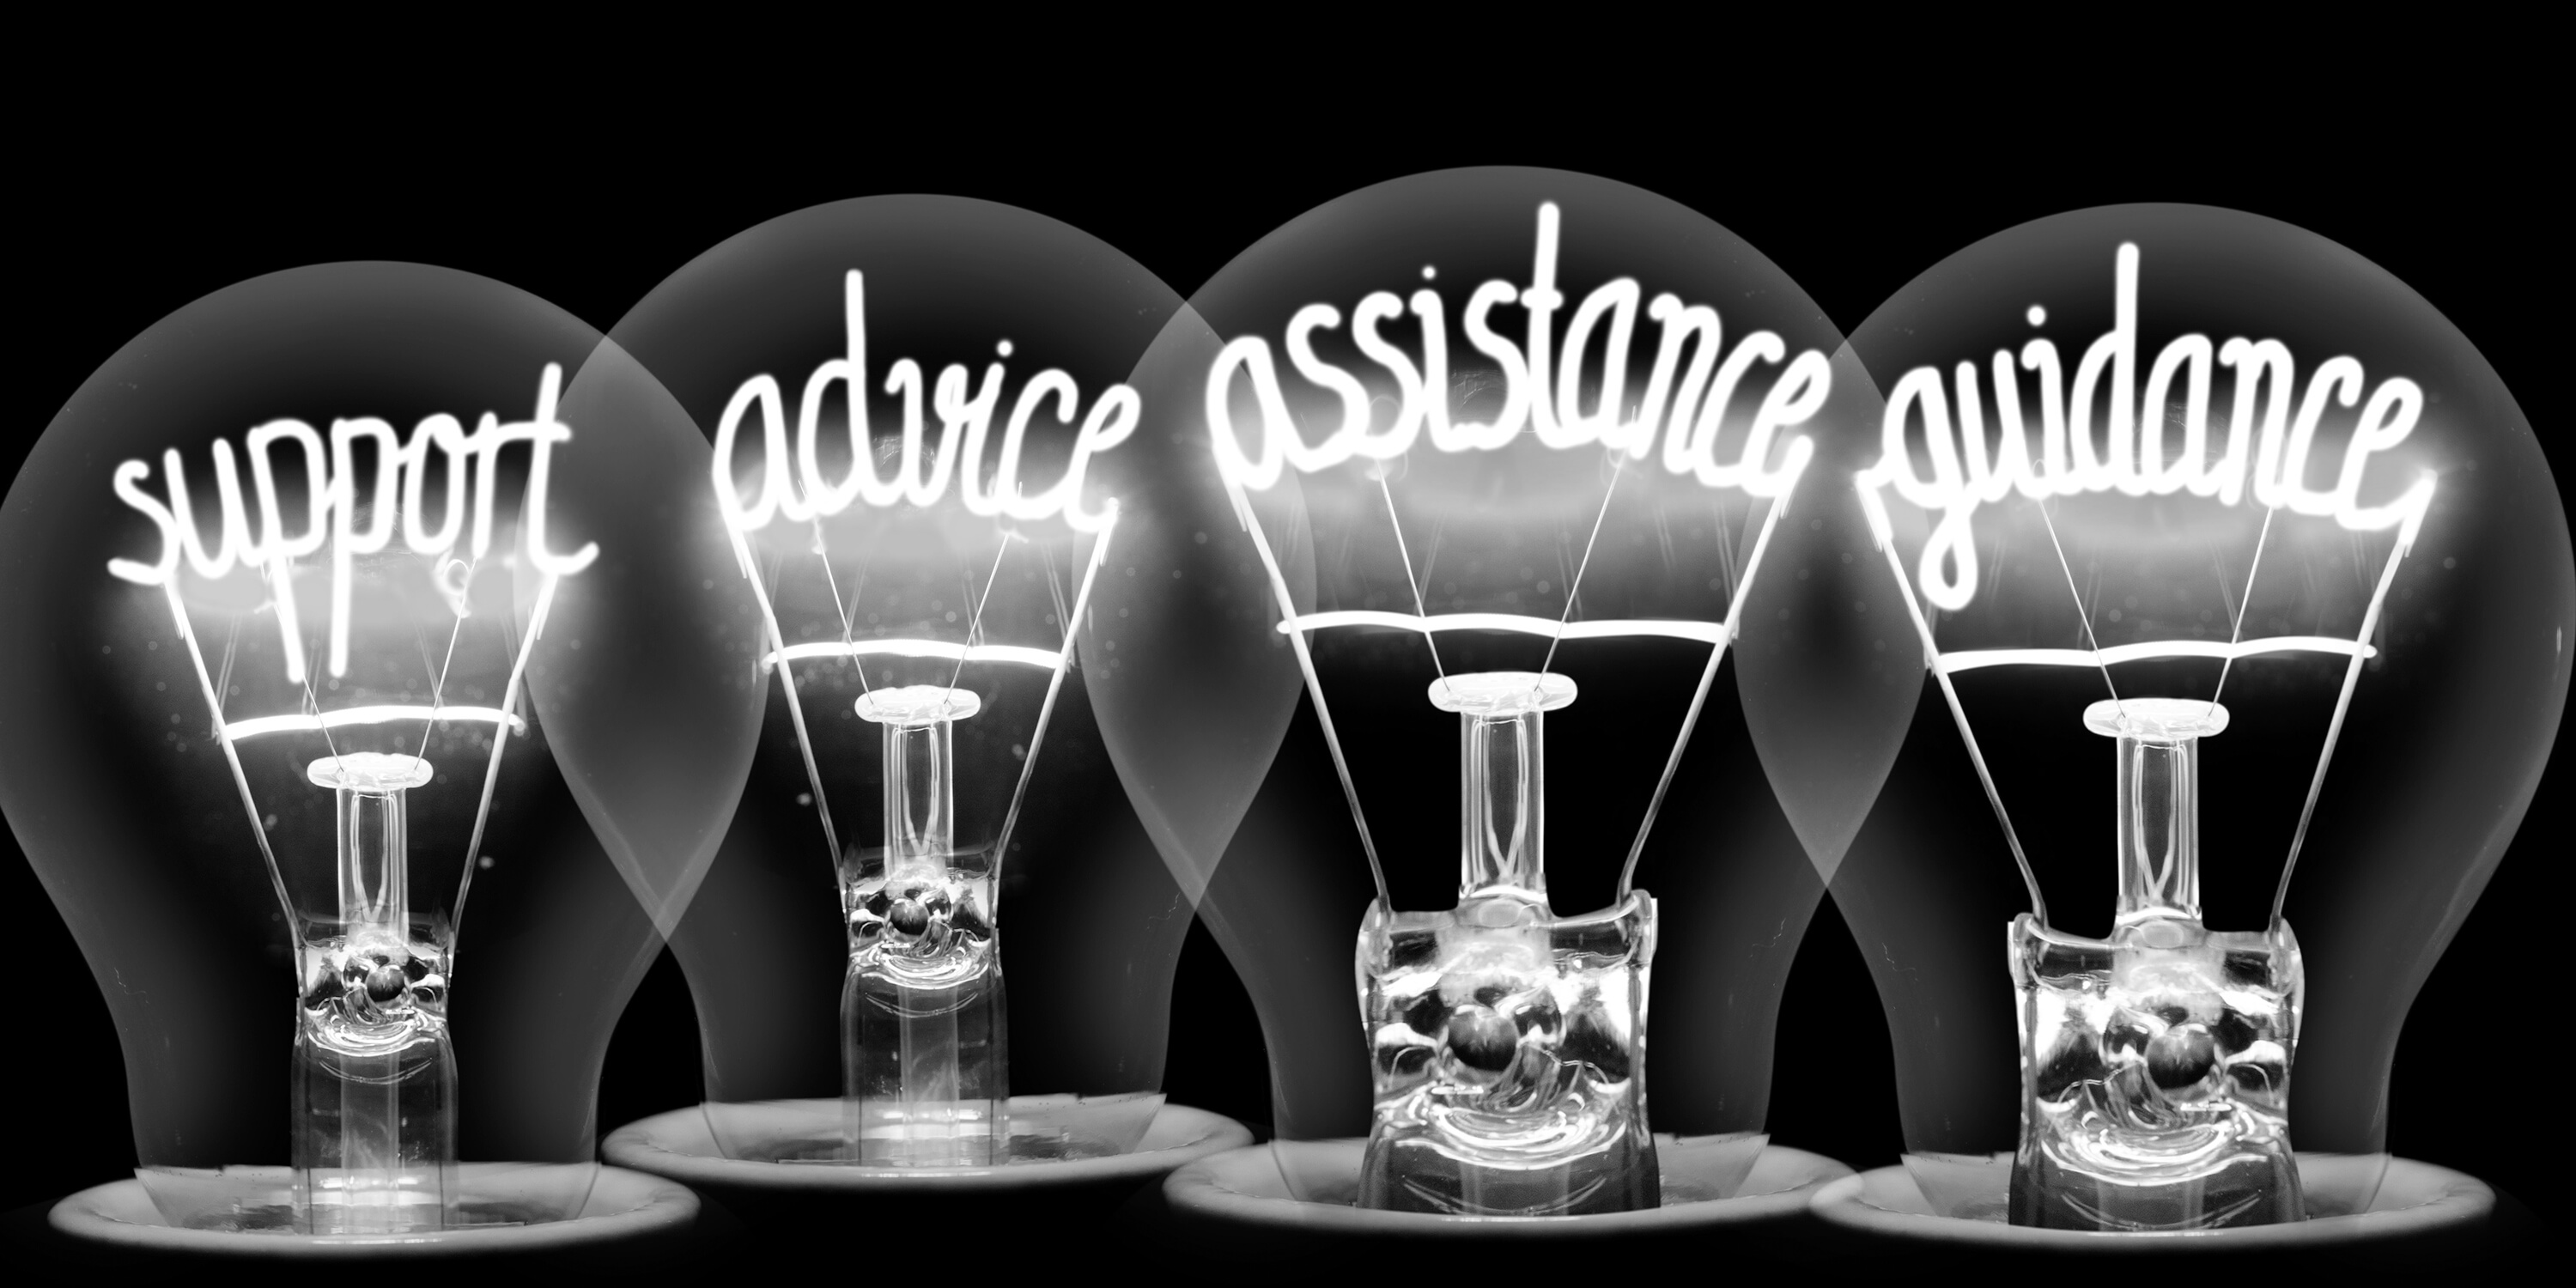 Image of 4 lightbulbs with the words Support, Advice, Assistance and Guidance inside.